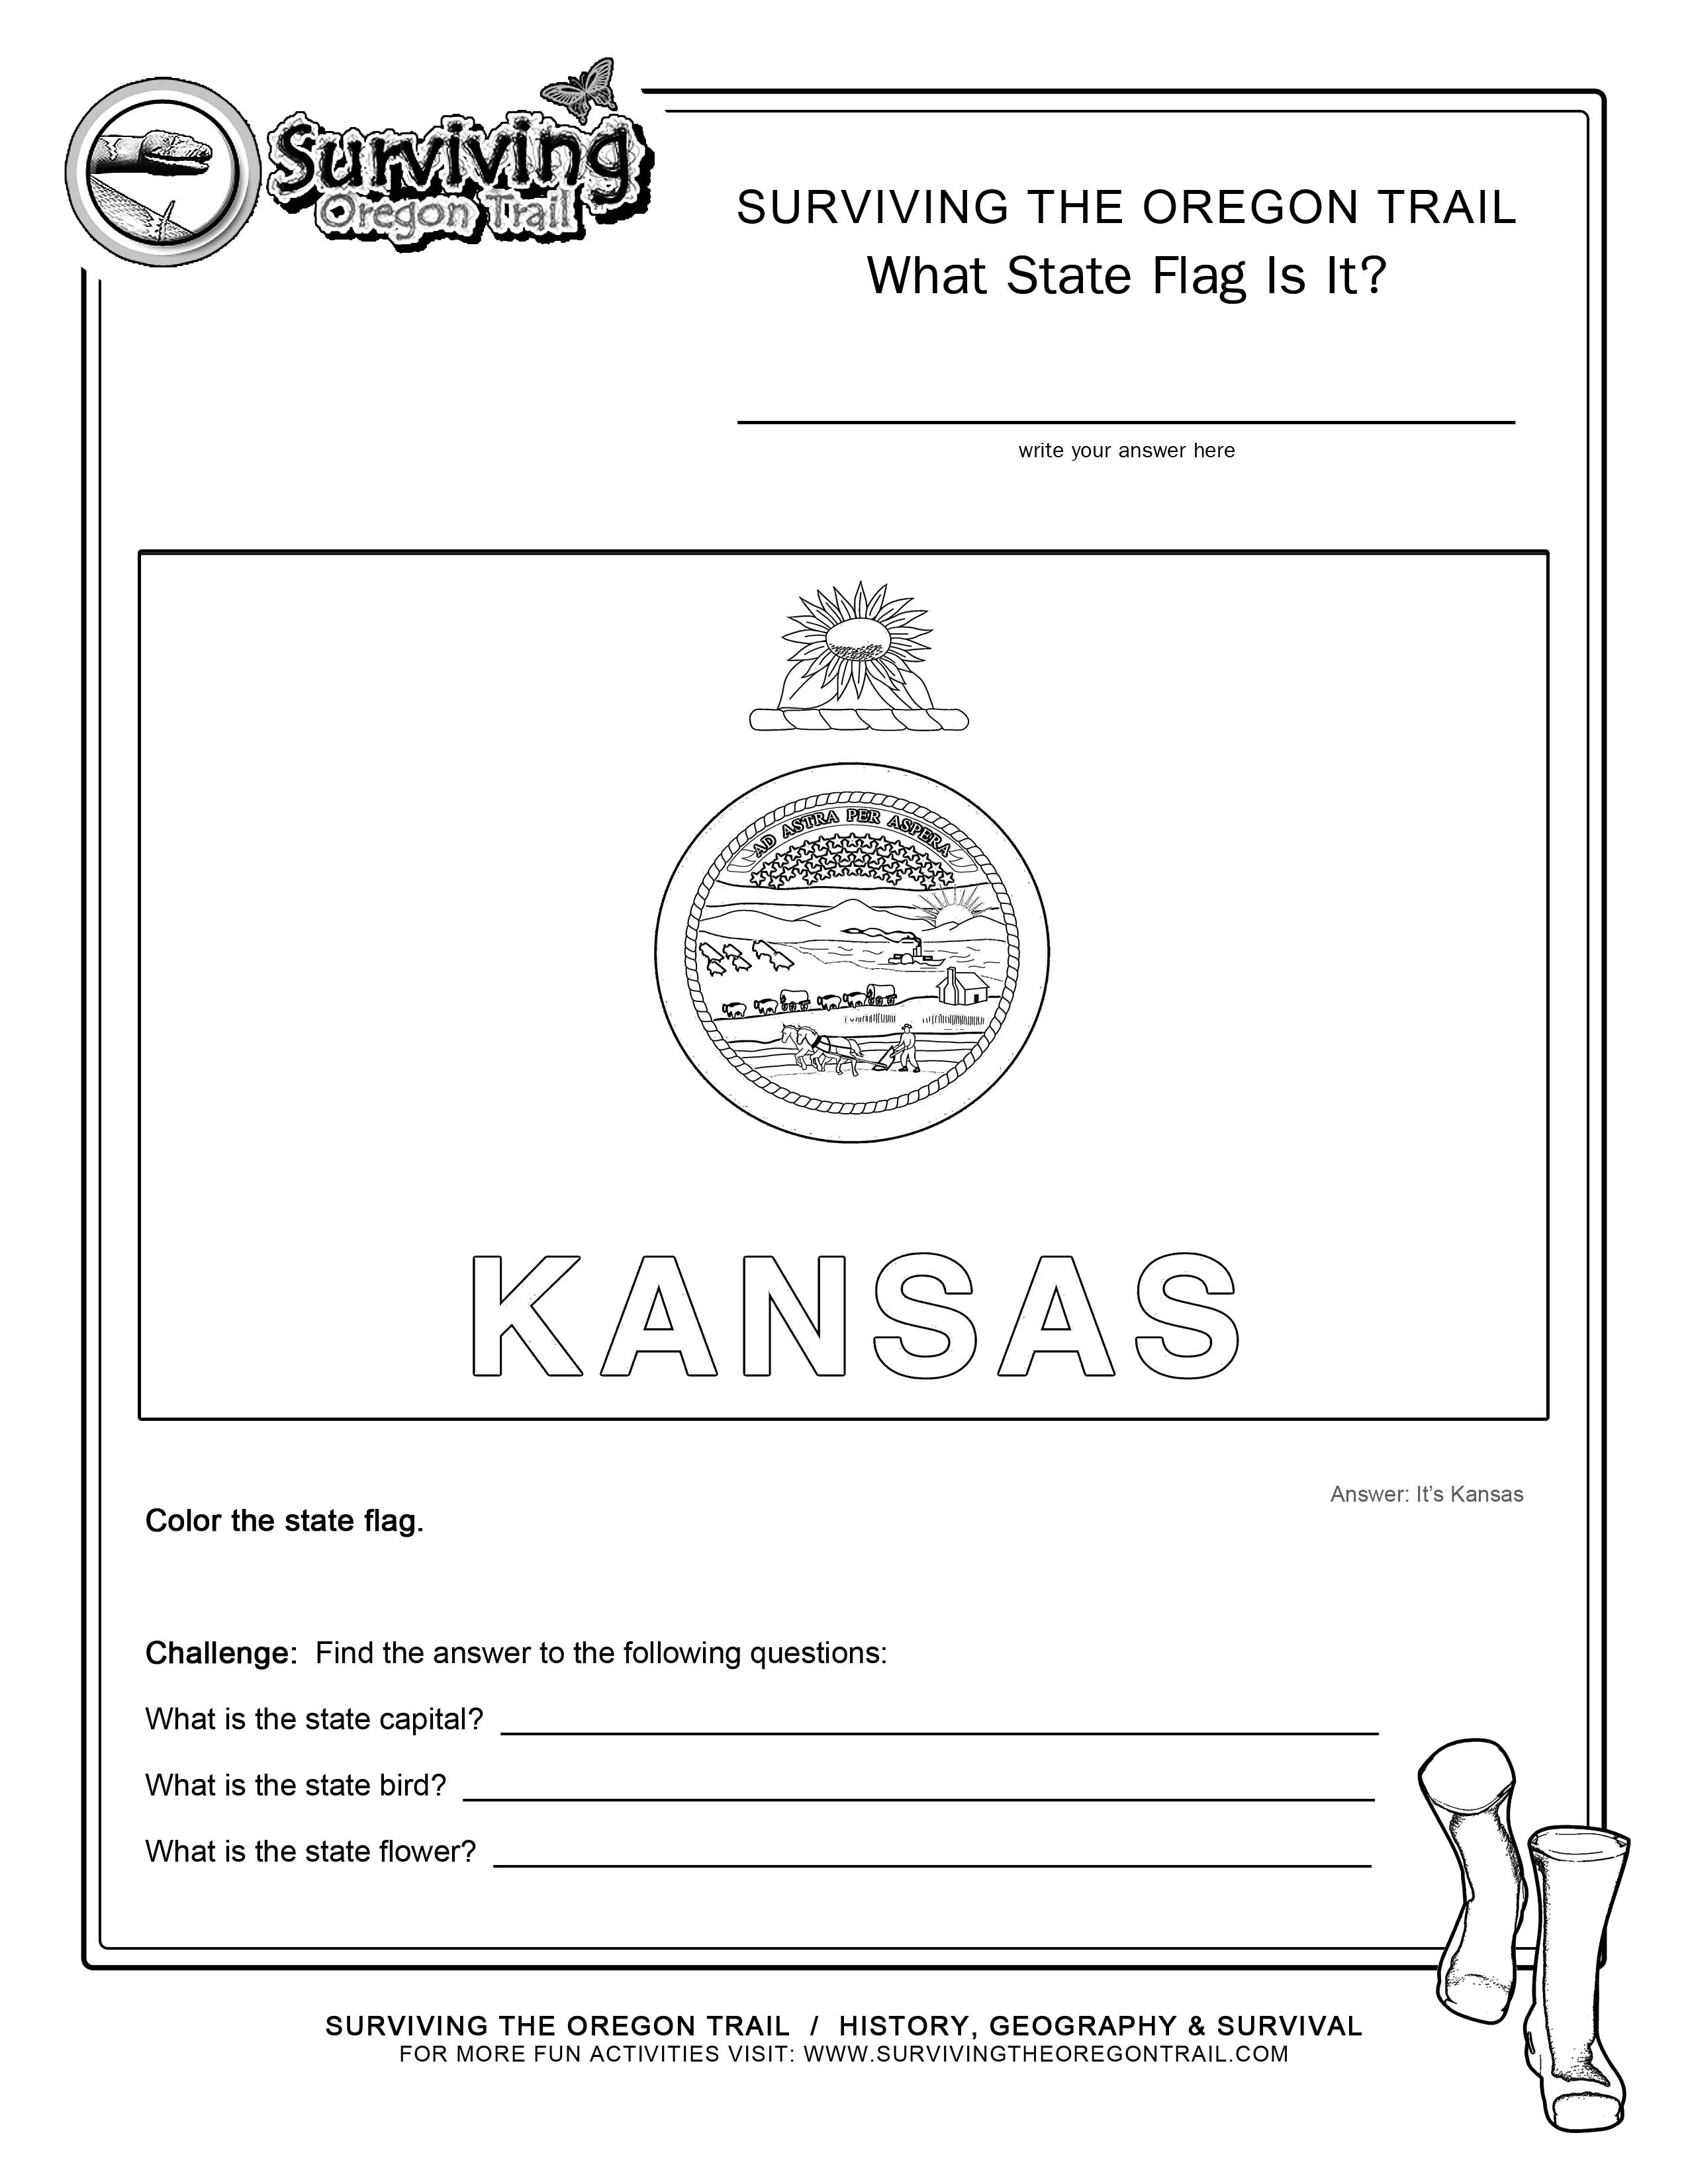 Kansas Geography Worksheet